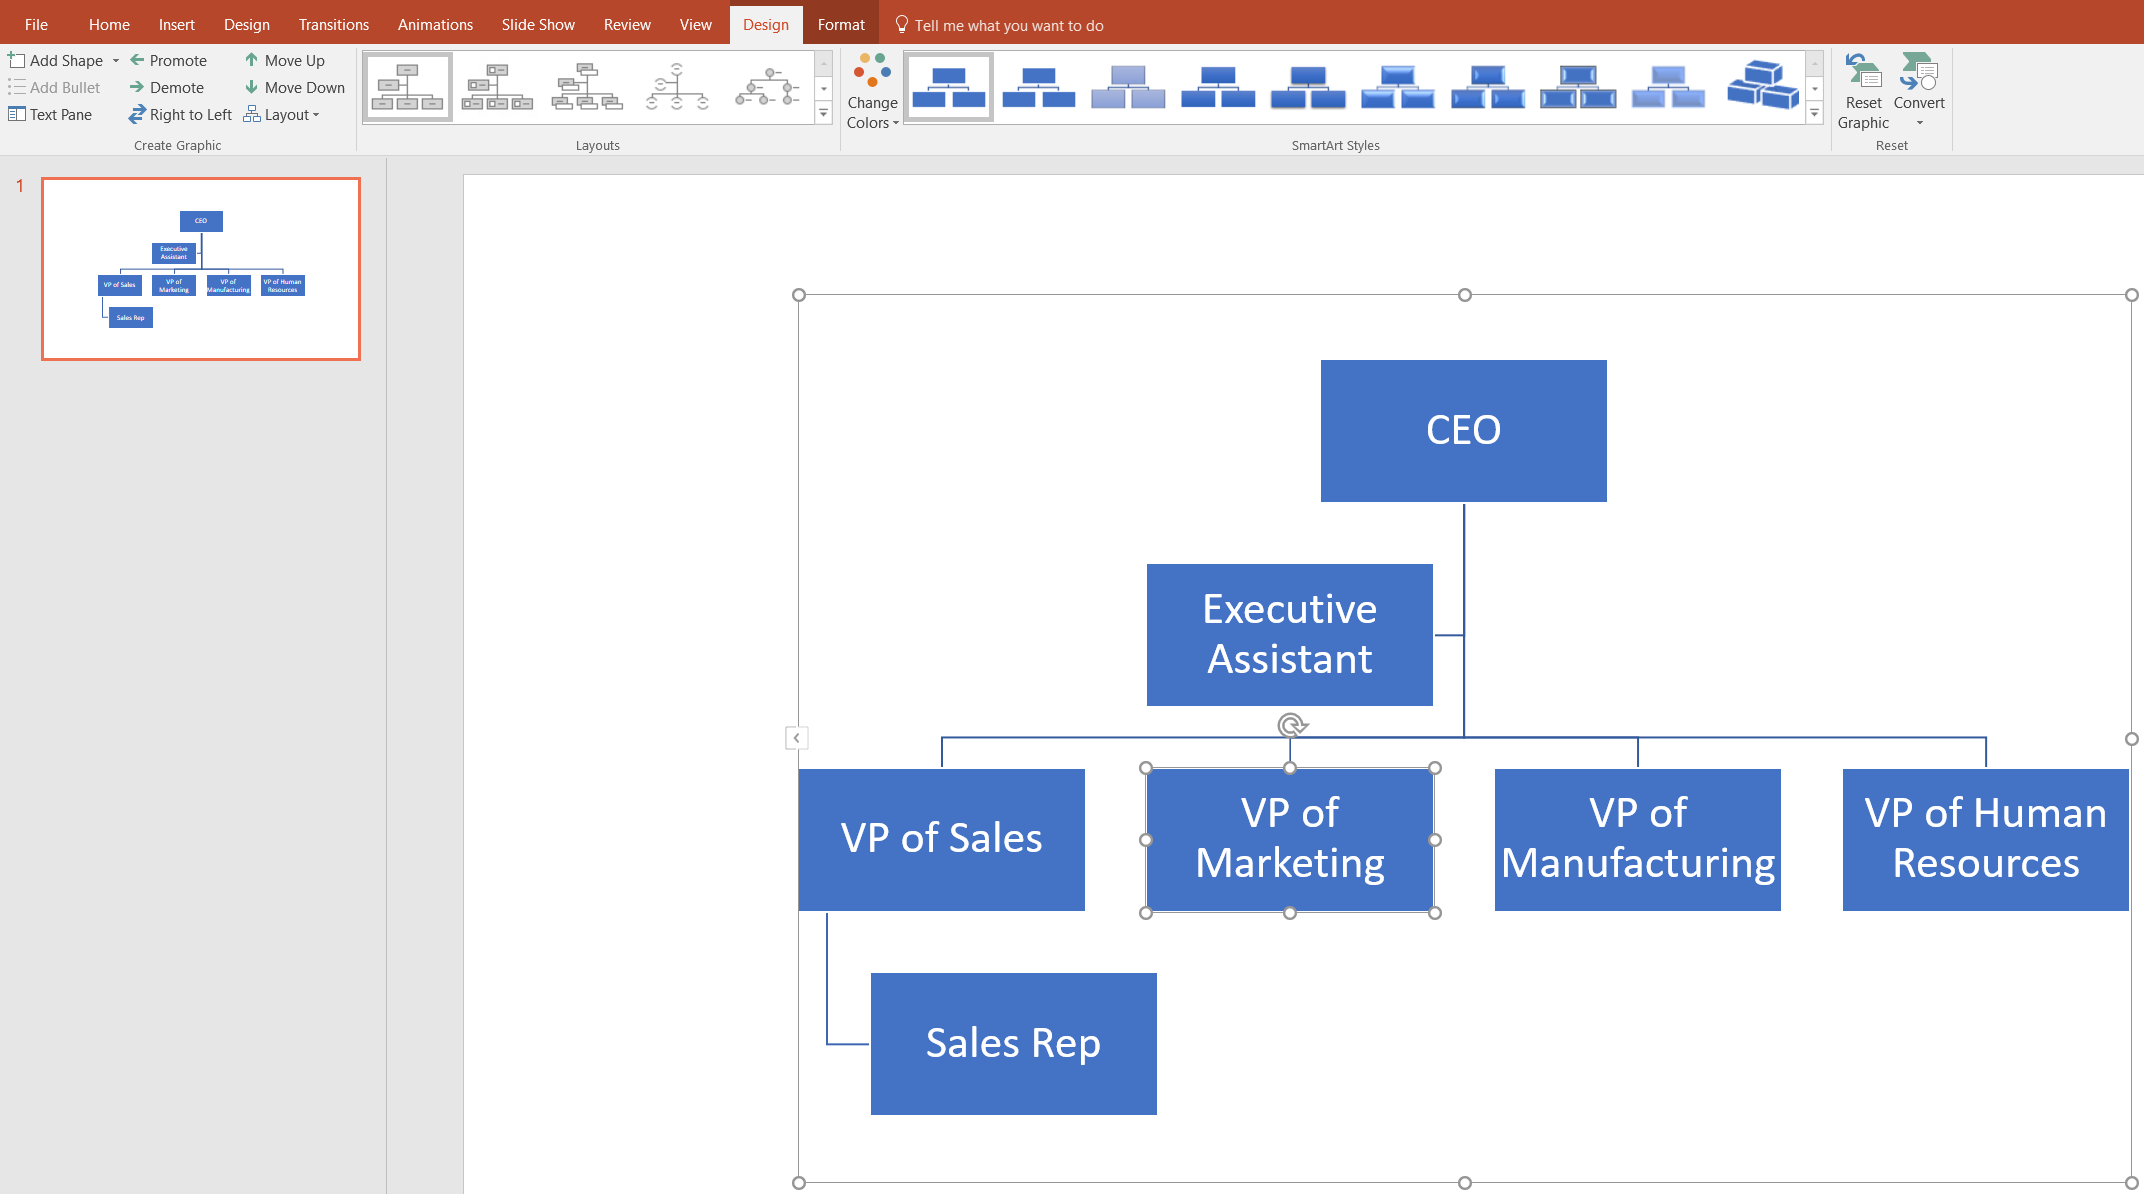 How to Make an Org Chart in PowerPoint | Lucidchart